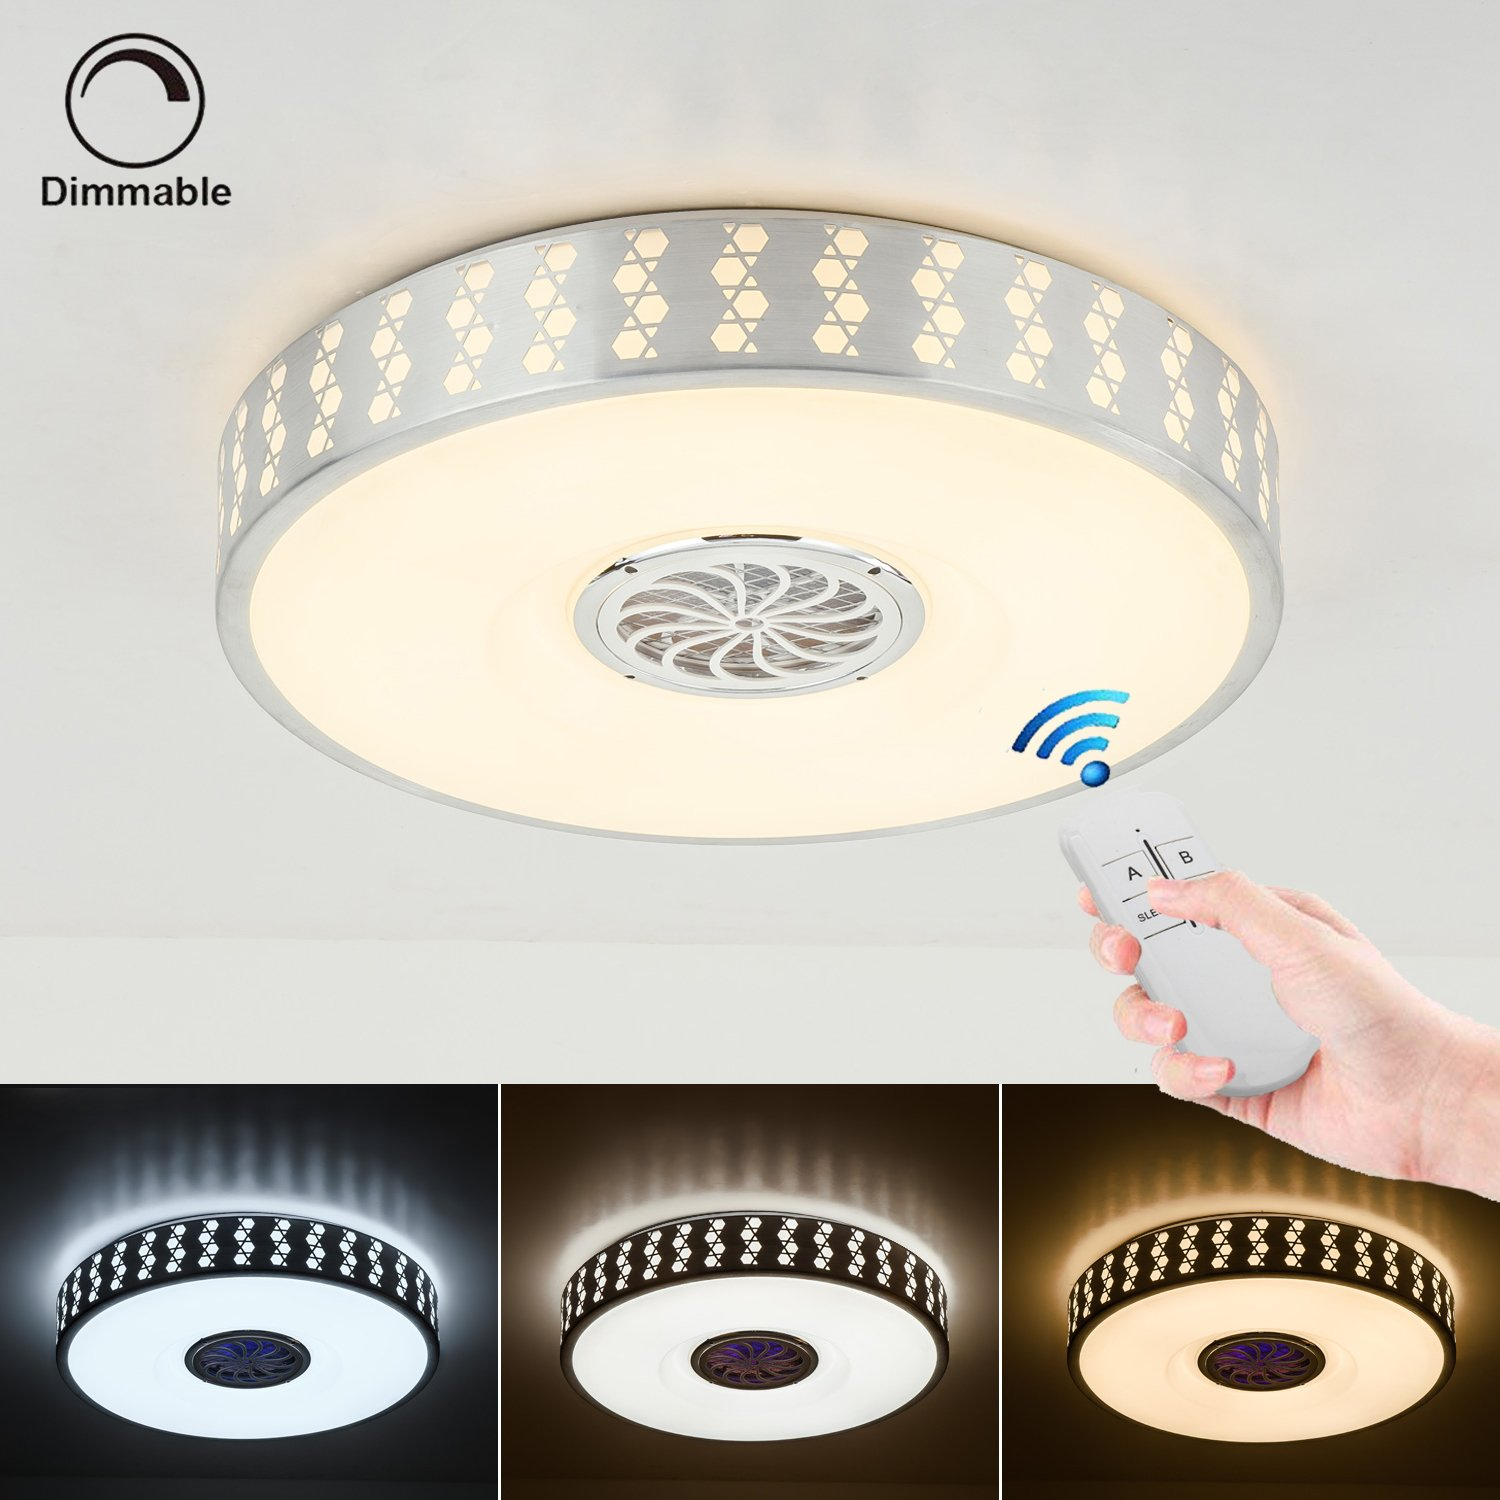 Best Price Packaged For Sale Circular Acrylic Ceiling Balcony Bedroom Ceiling Lamps Led Modern Minimalist Kitchen Lighting Comfortable And Easy To Wear Ceiling Lights Ceiling Lights & Fans